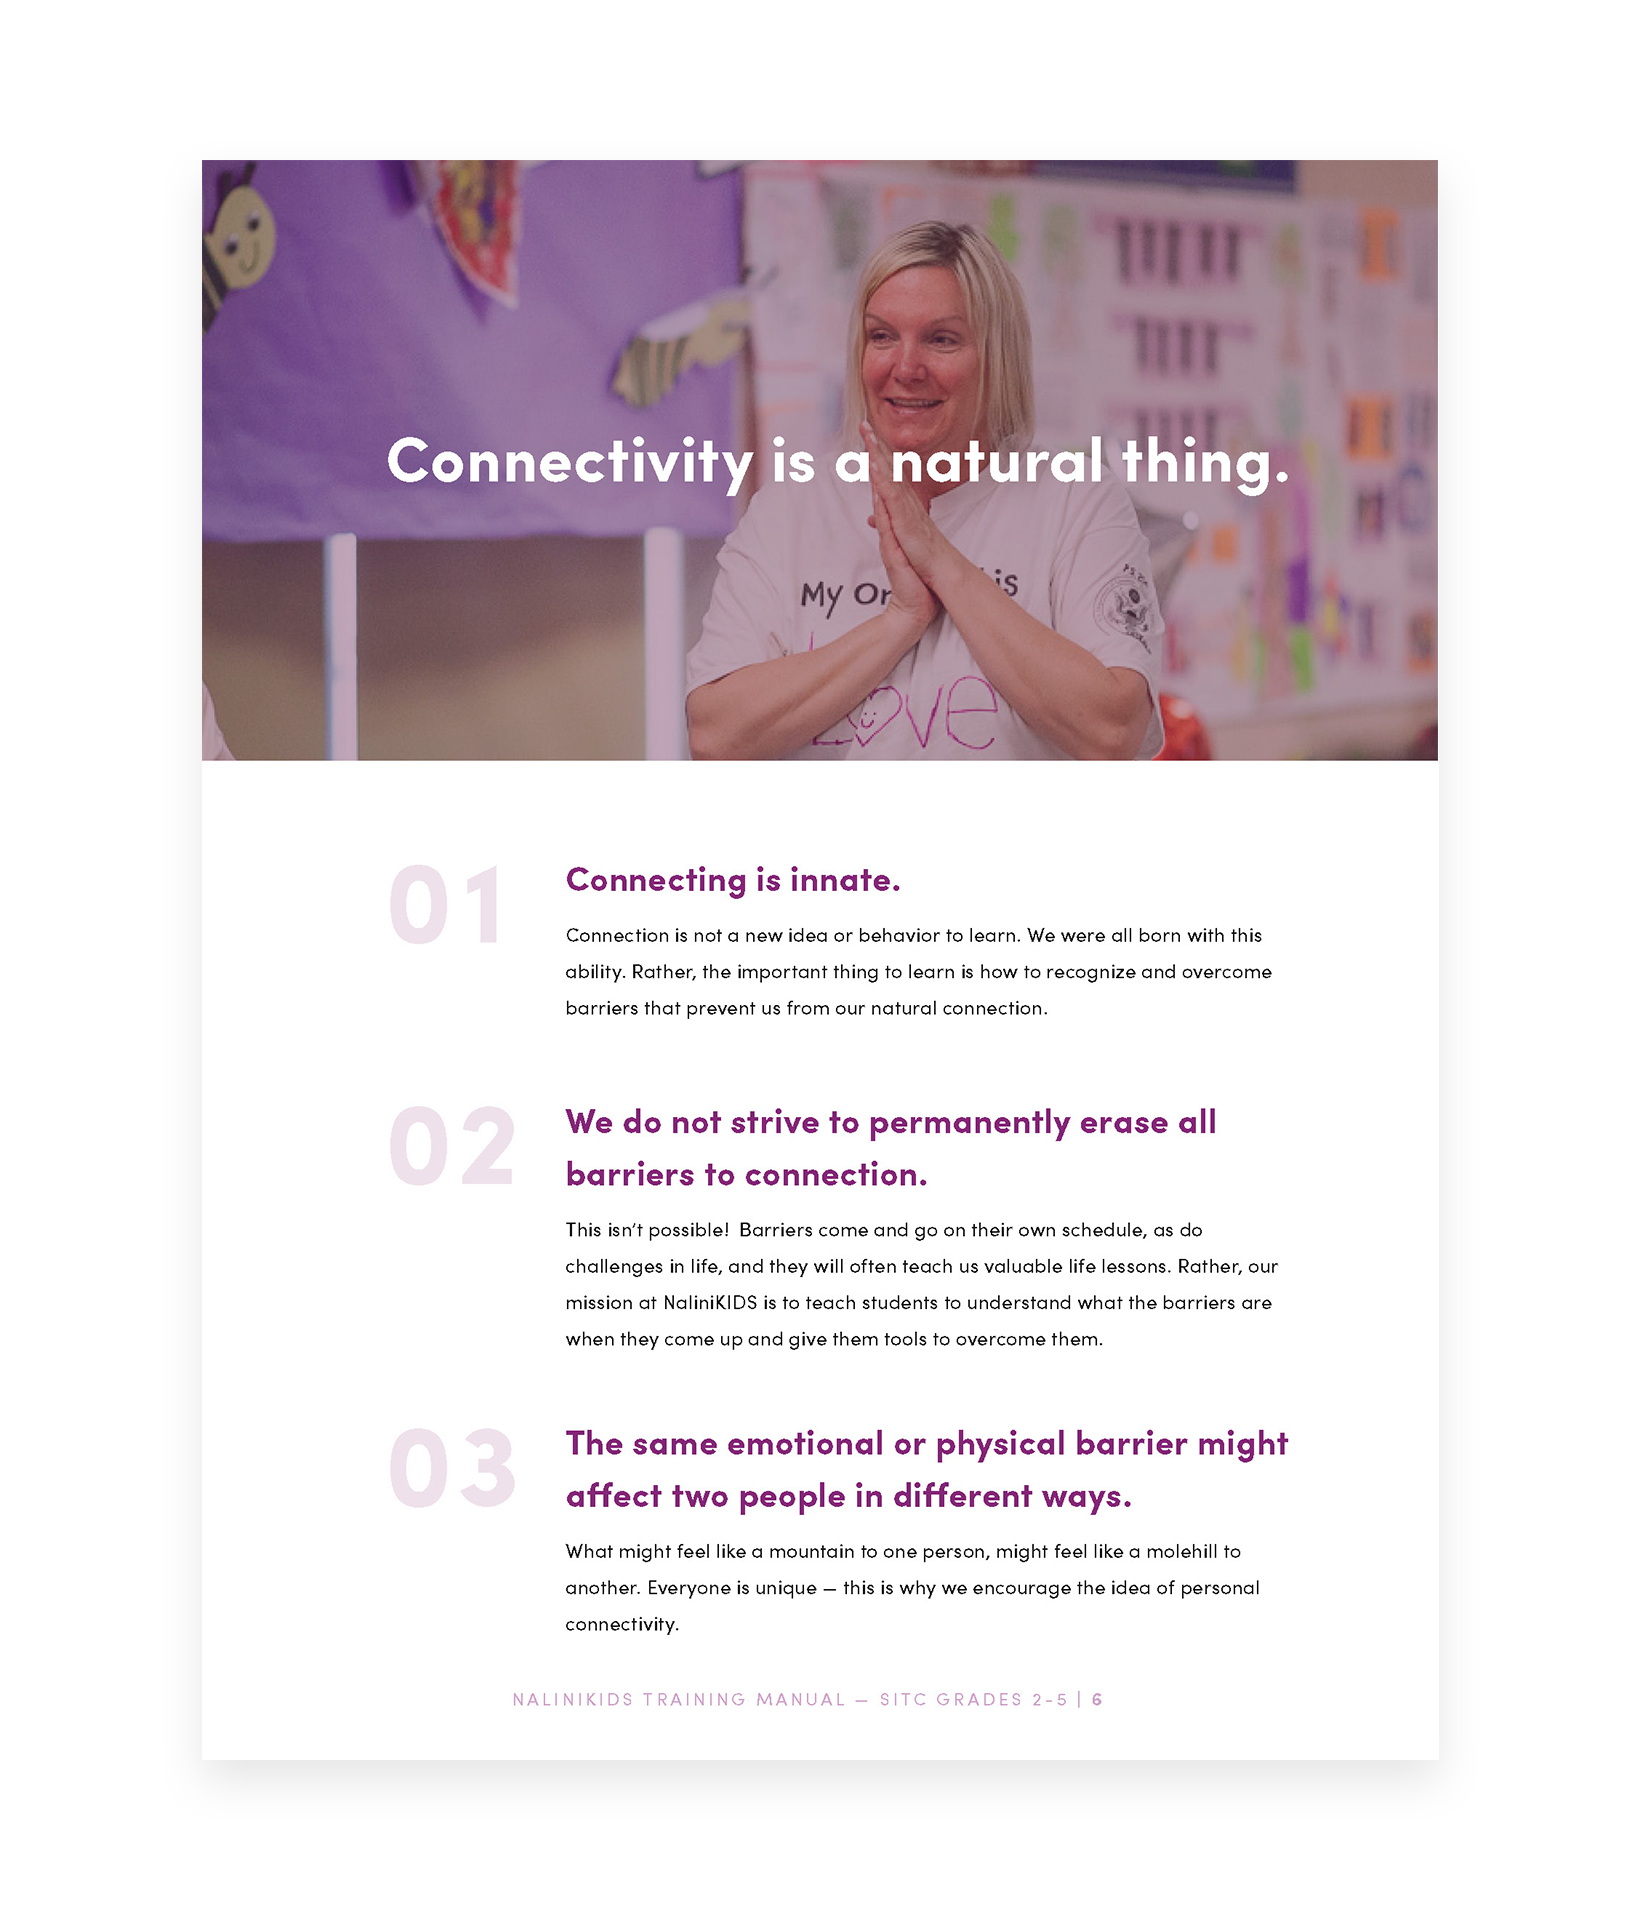 NK_Connectivity-Page